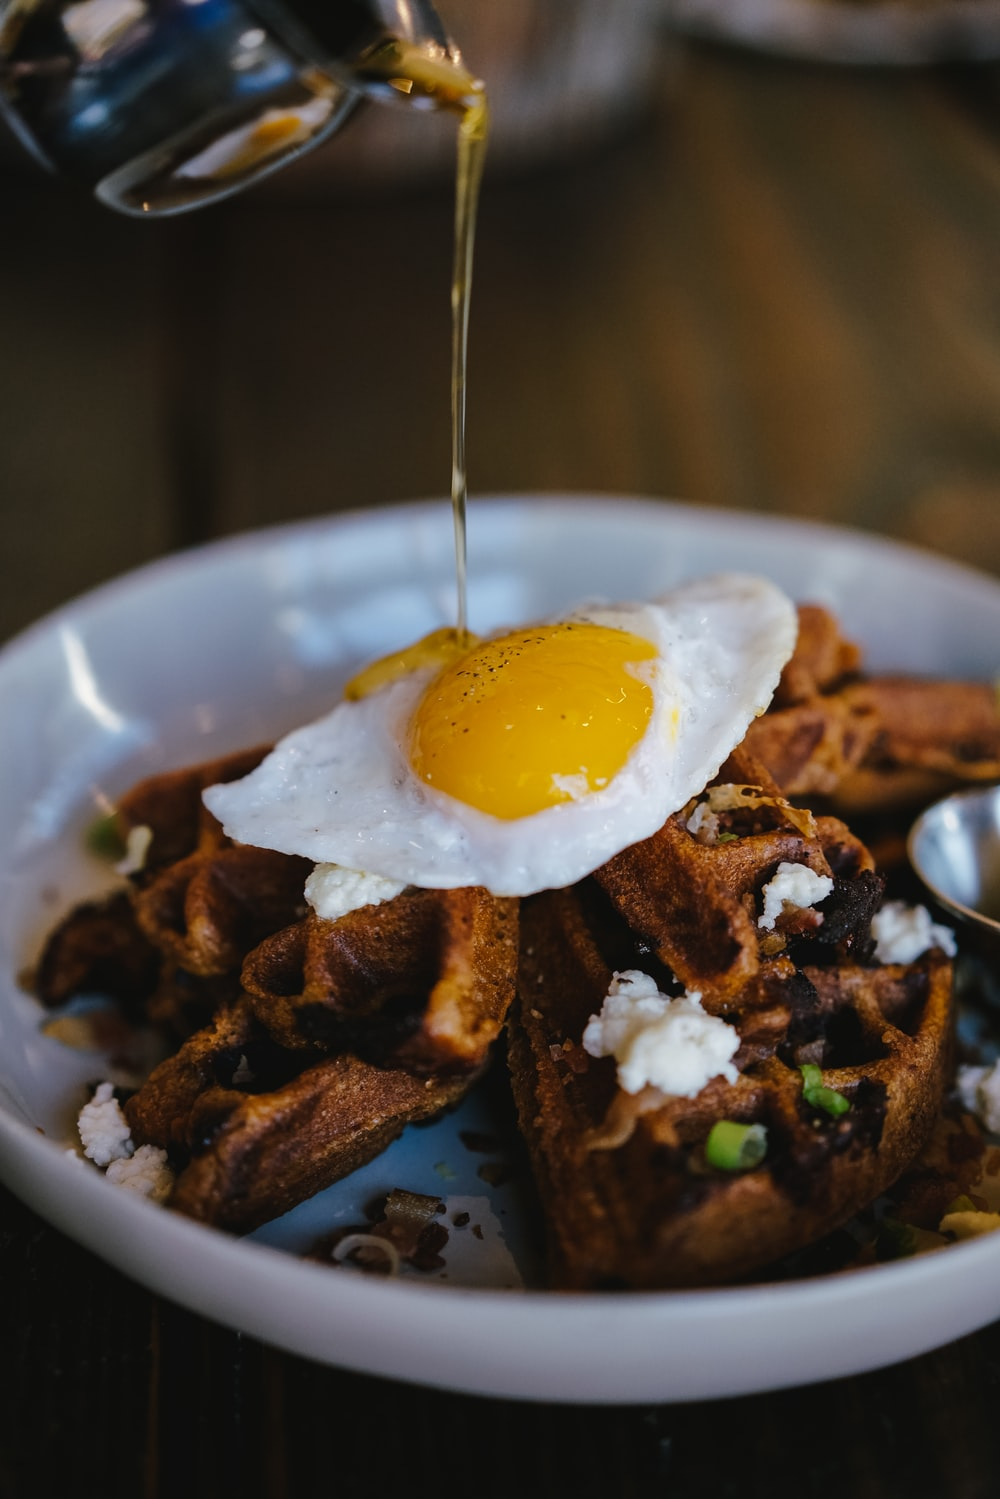 person pouring maple syrup on bowl of waffle with sunny side up egg